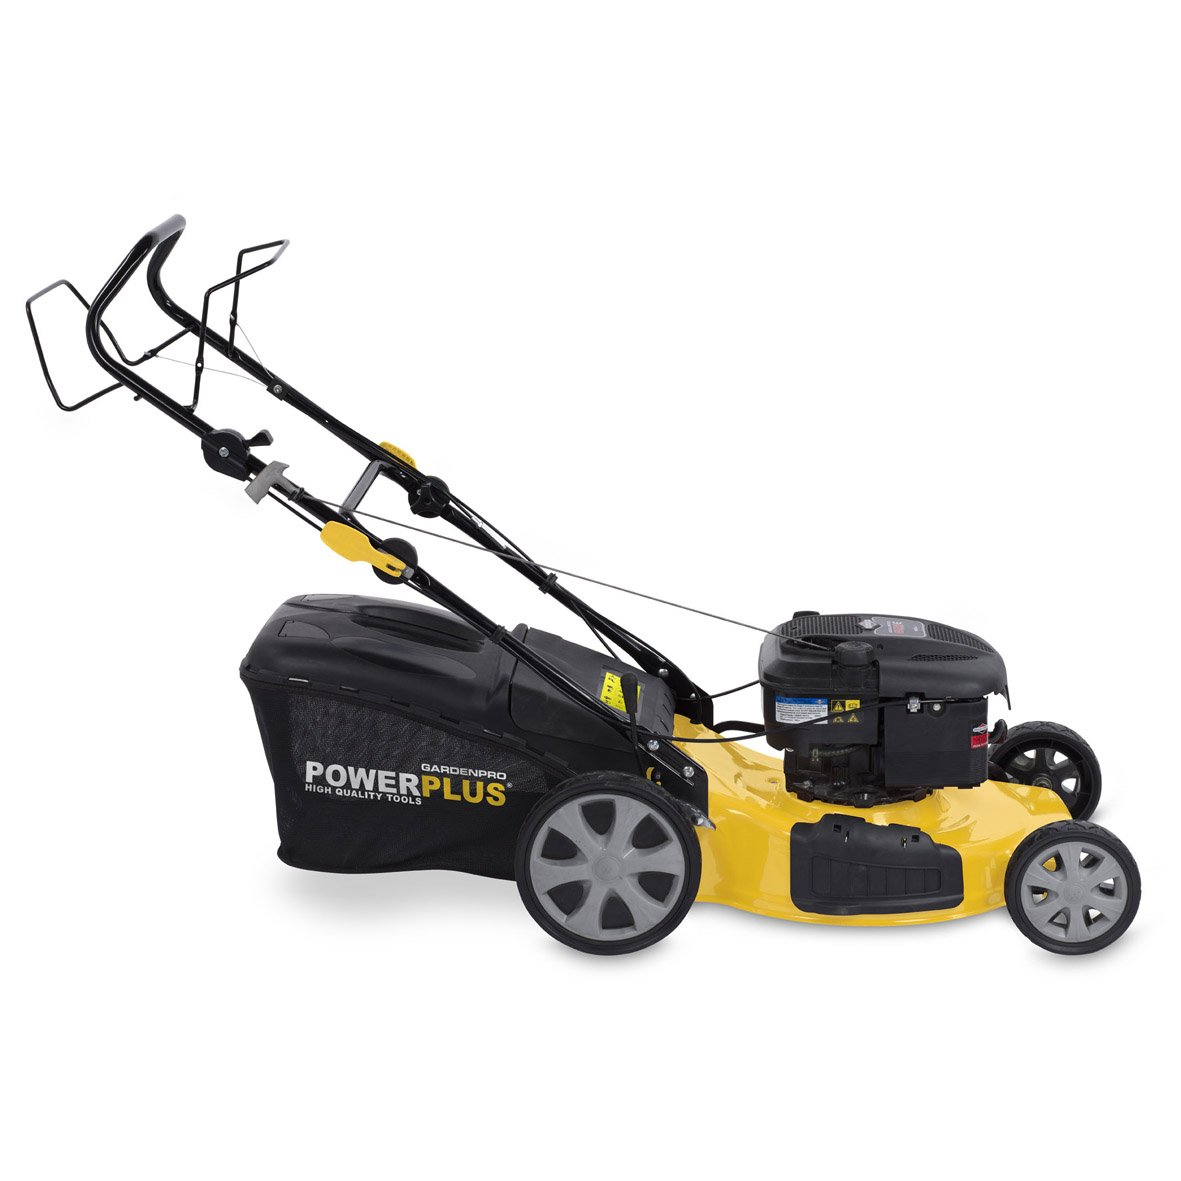 Powerplus Garden Pro 502 mm (20